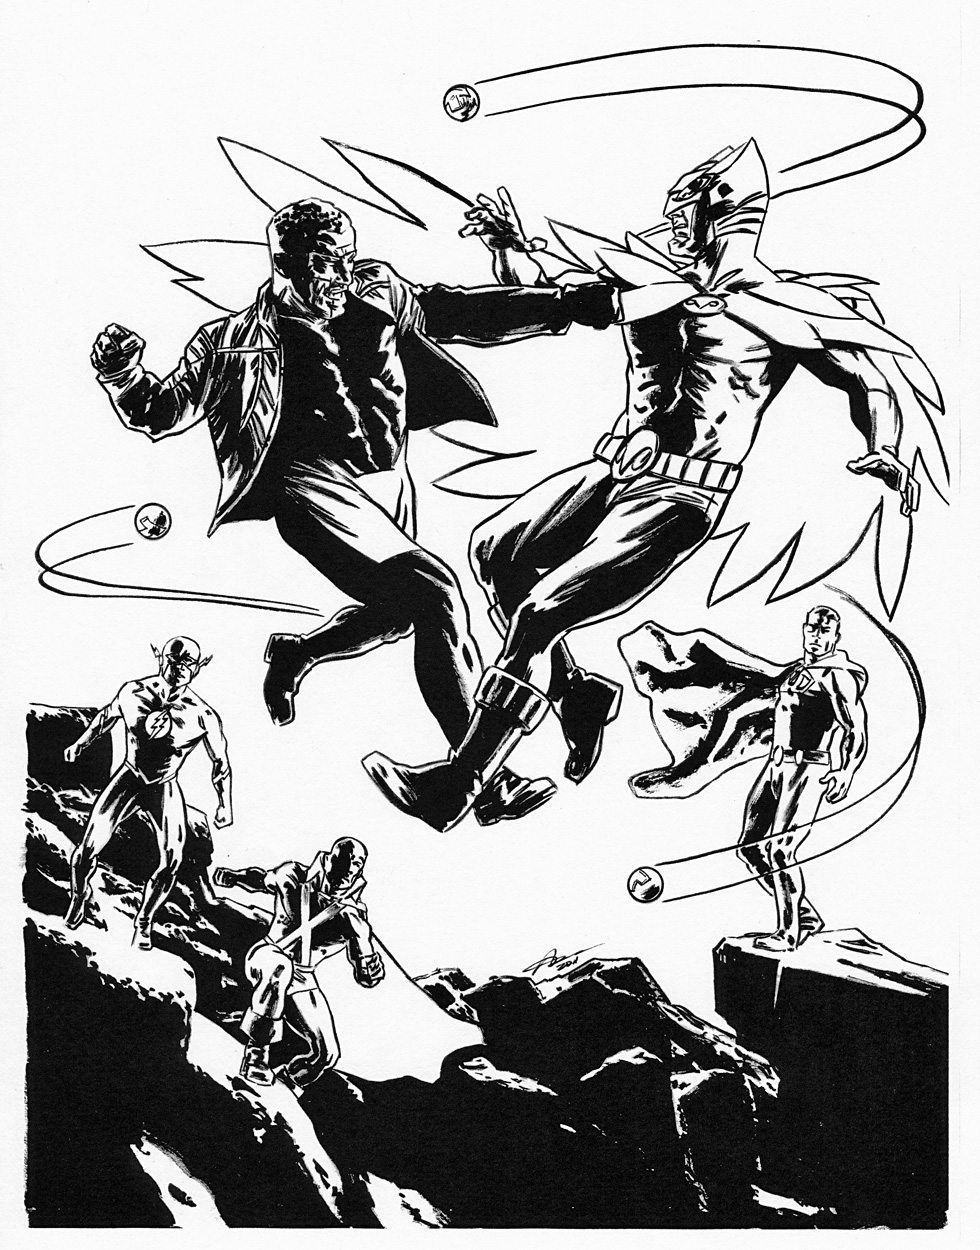 AARON CAMPBELL 2011 JUSTICE LEAGUE COMMISSION Comic Art